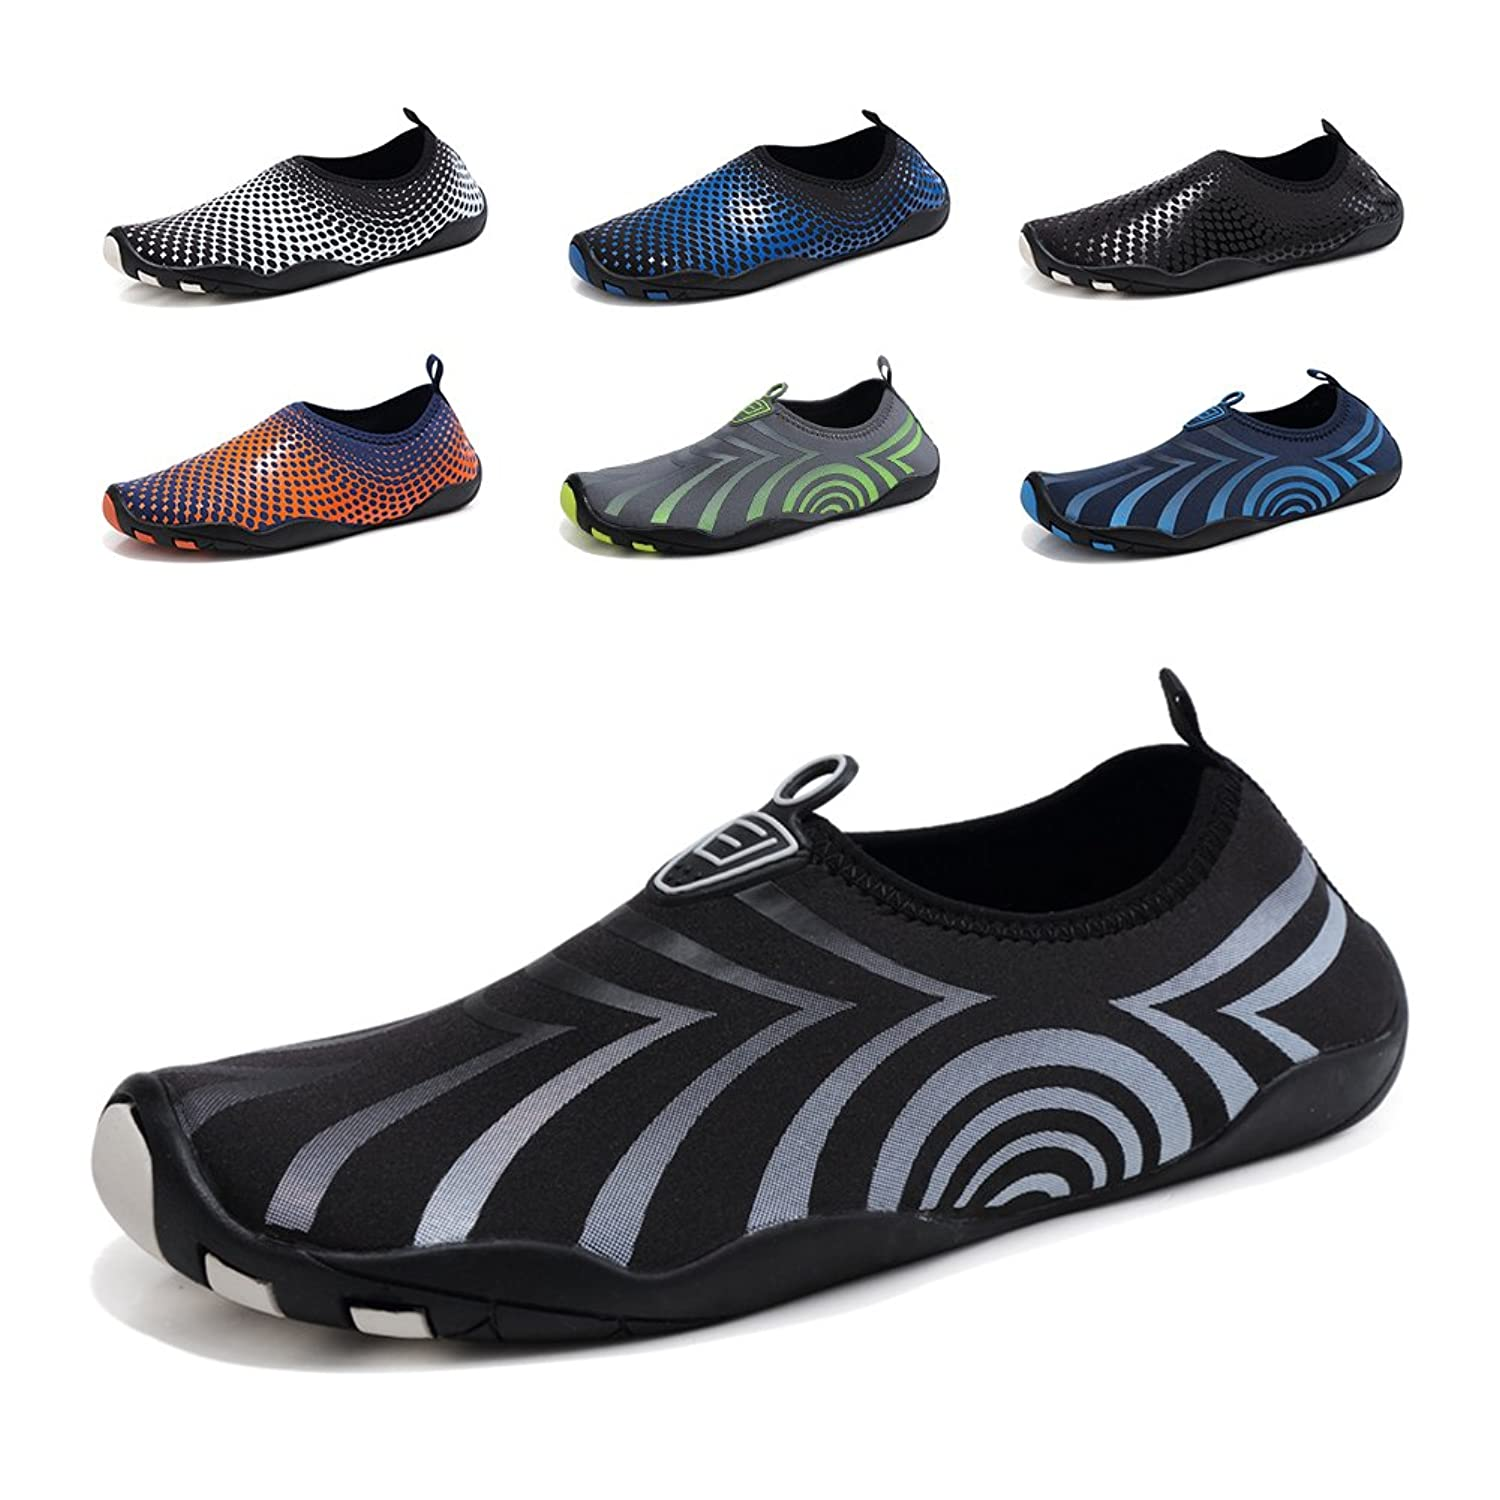 GUBARUN Men Barefoot Quick-Dry Water Shoes